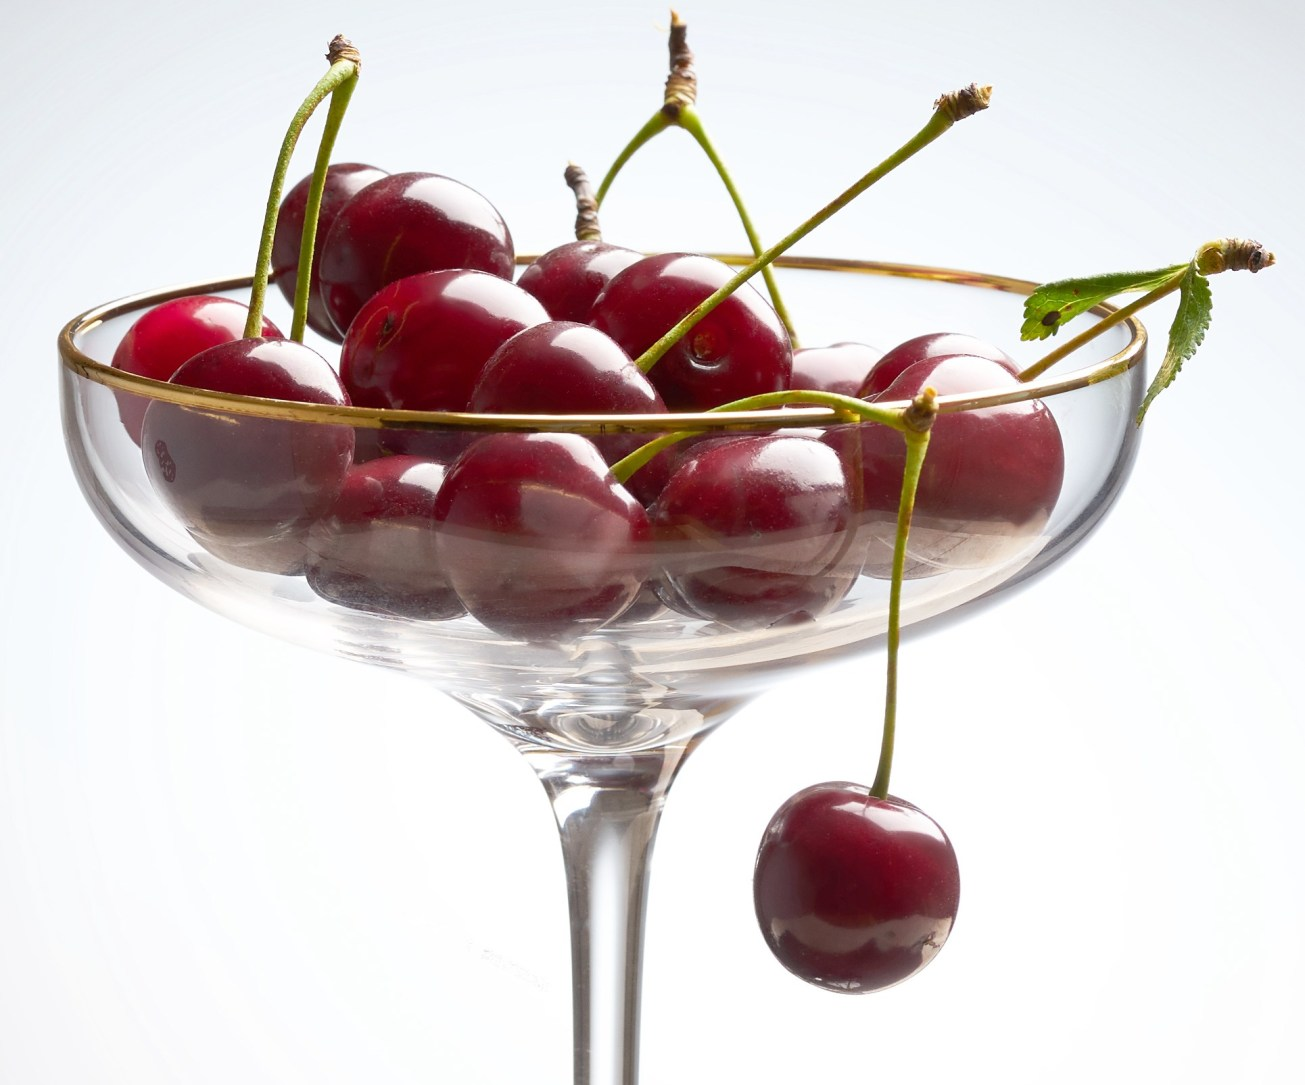 Food photography cherries in a champagne glass